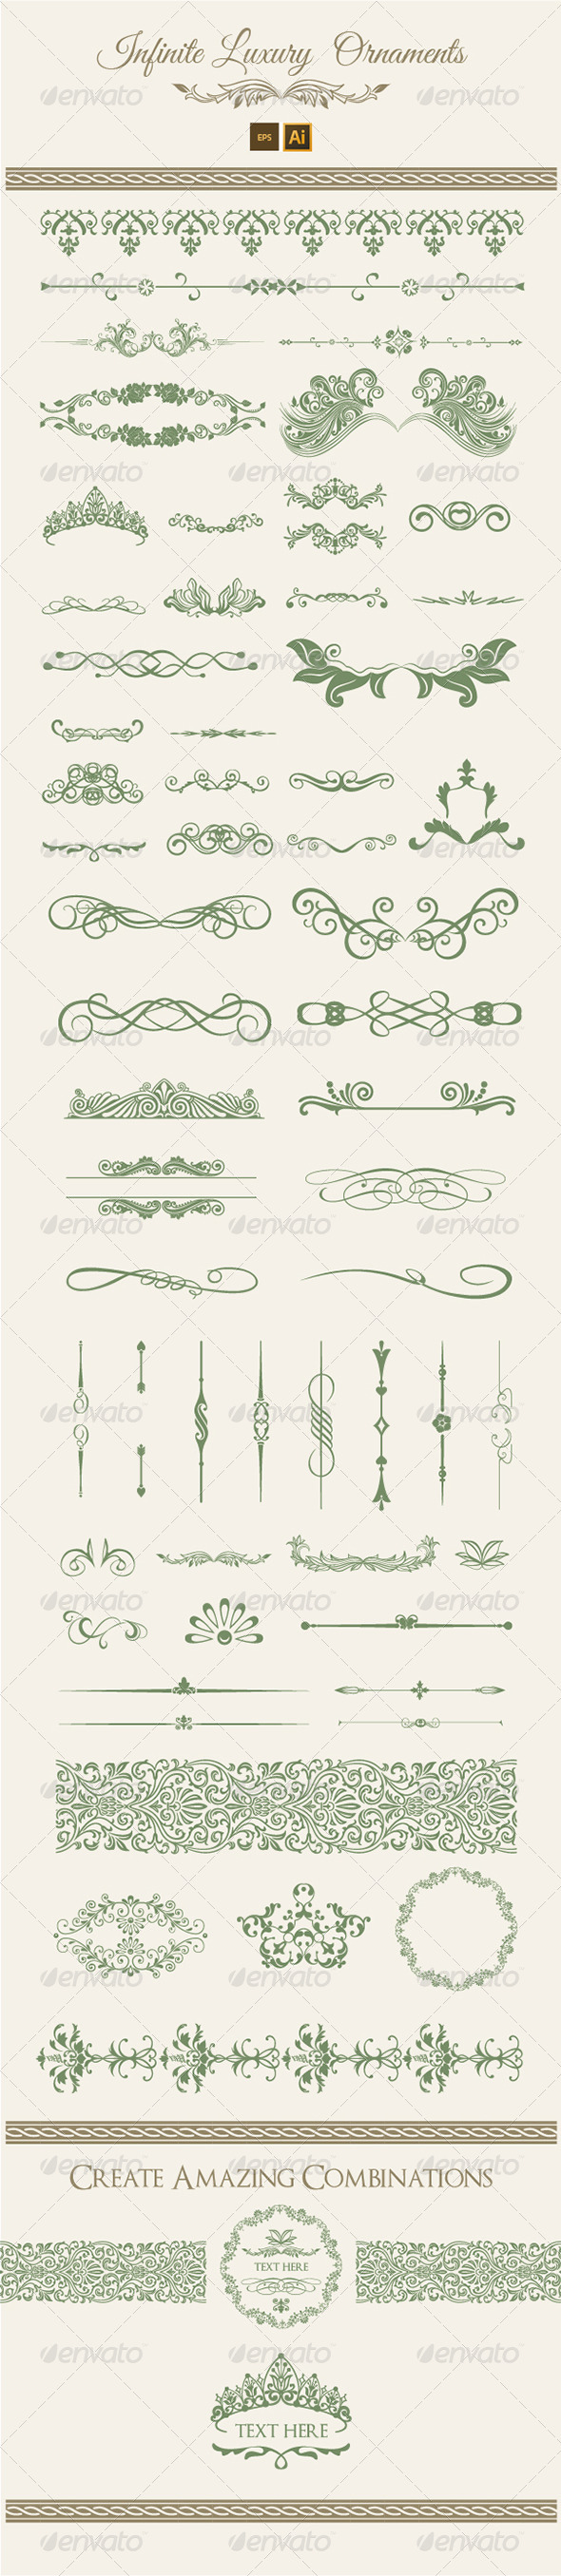 GraphicRiver Infinite Luxury Decoration 5073124